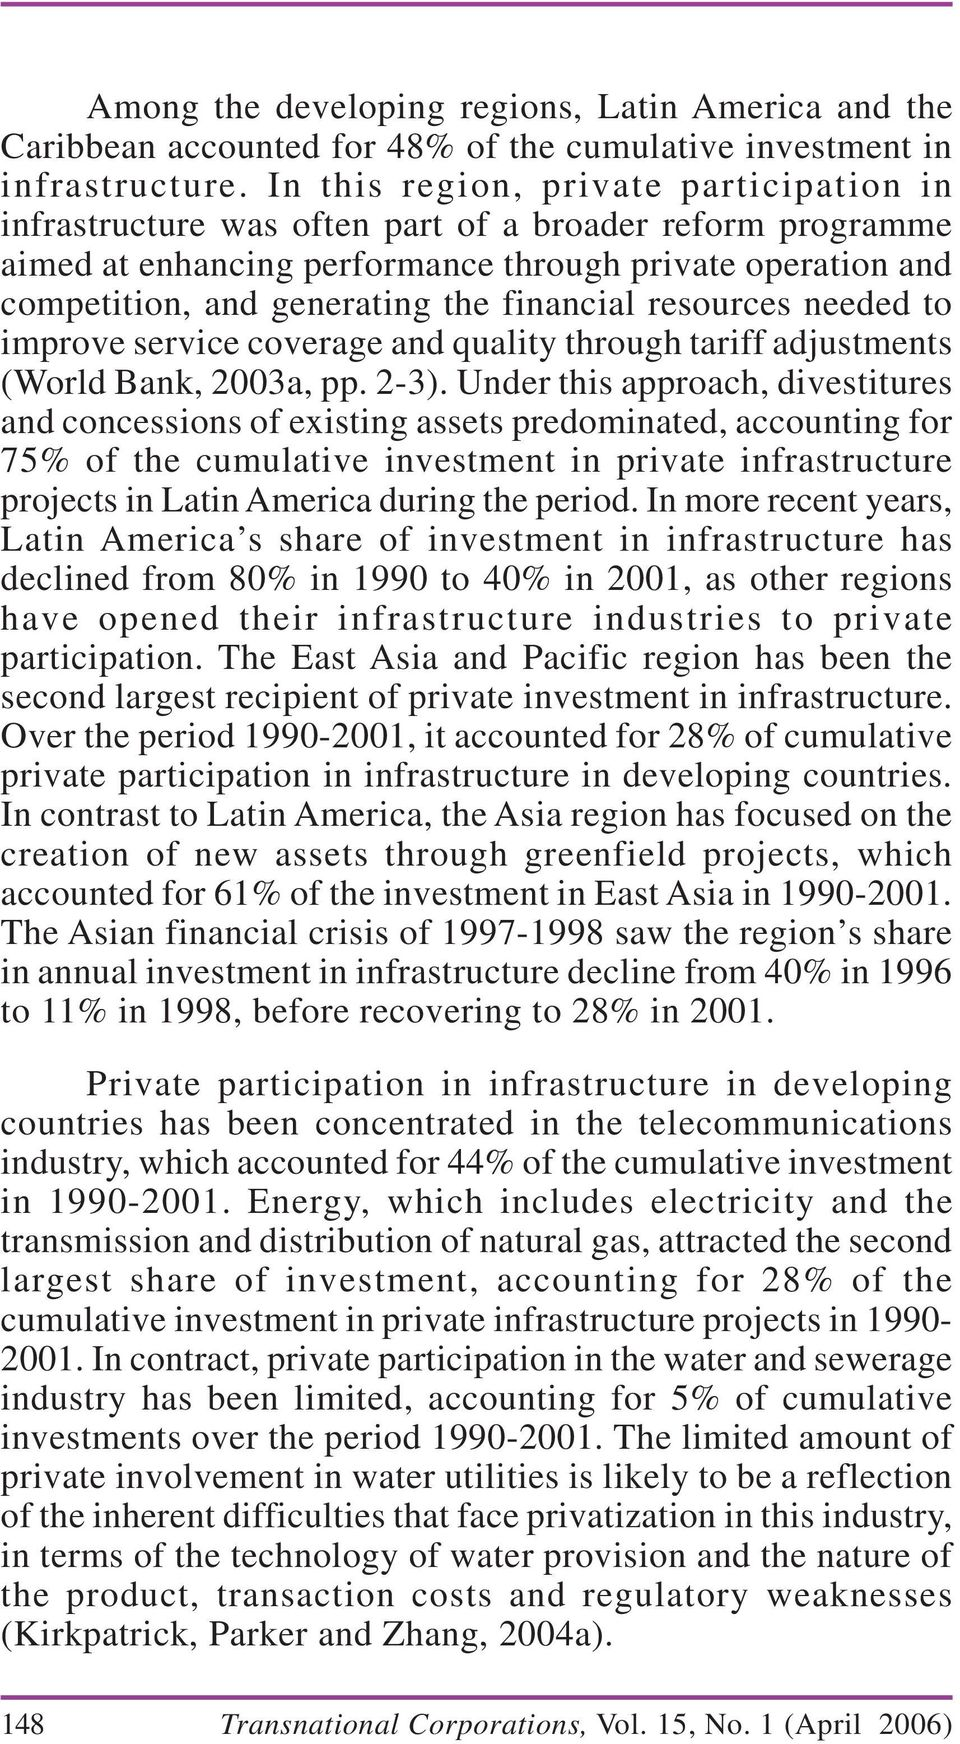 financial resources needed to improve service coverage and quality through tariff adjustments (World Bank, 2003a, pp. 2-3).